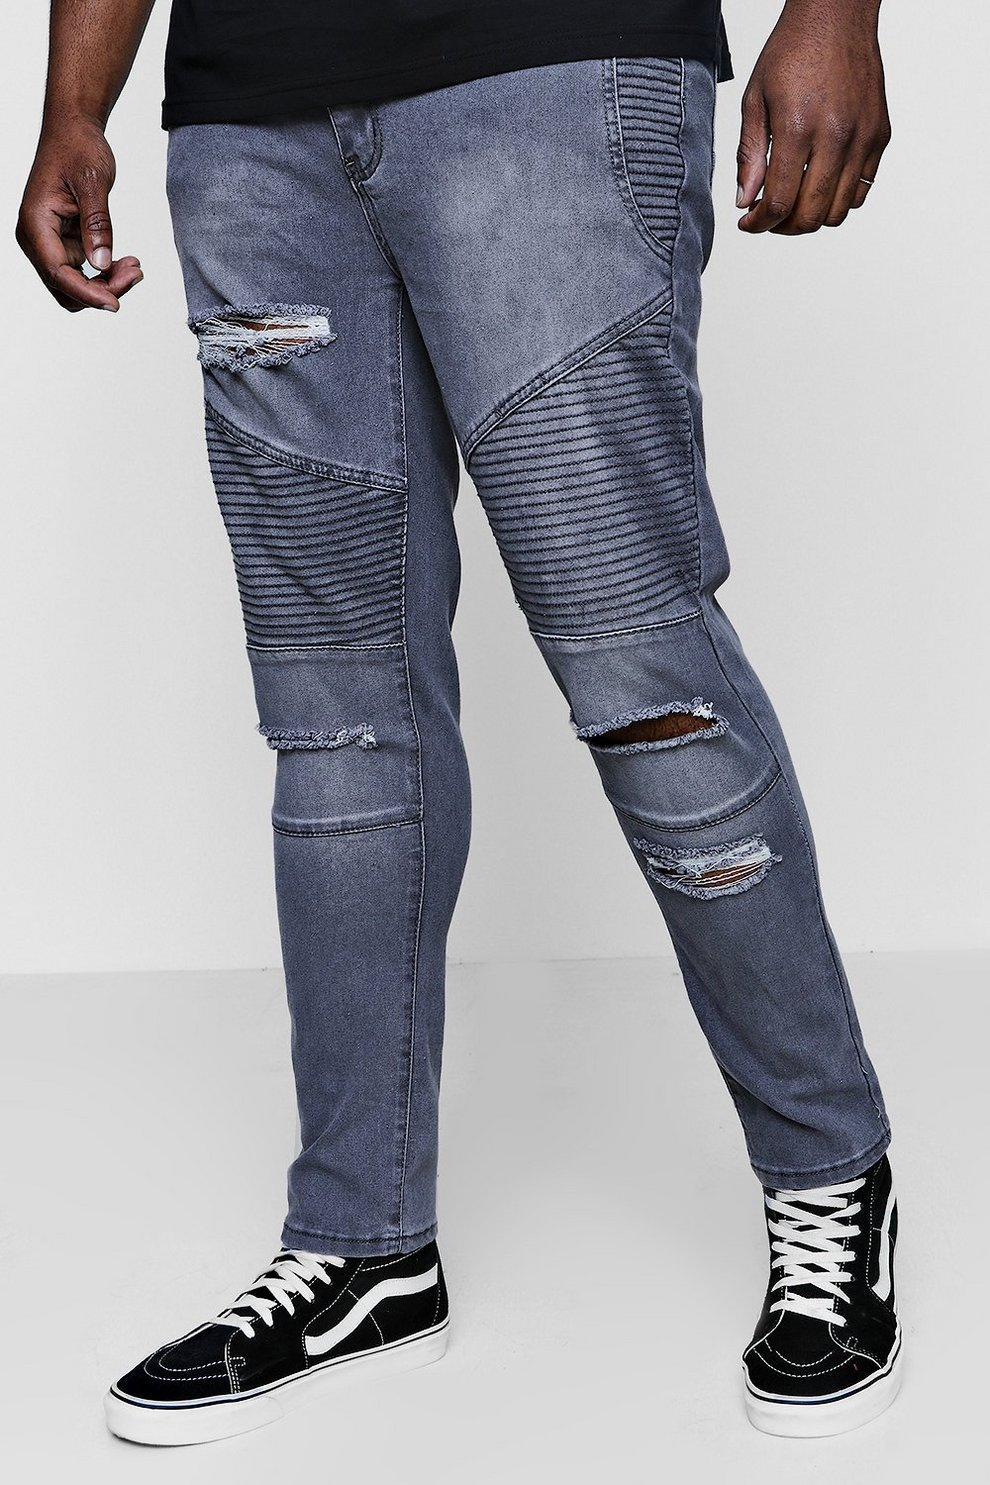 dabc8648 Big And Tall Skinny Fit Ripped Biker Jeans. Hover to zoom